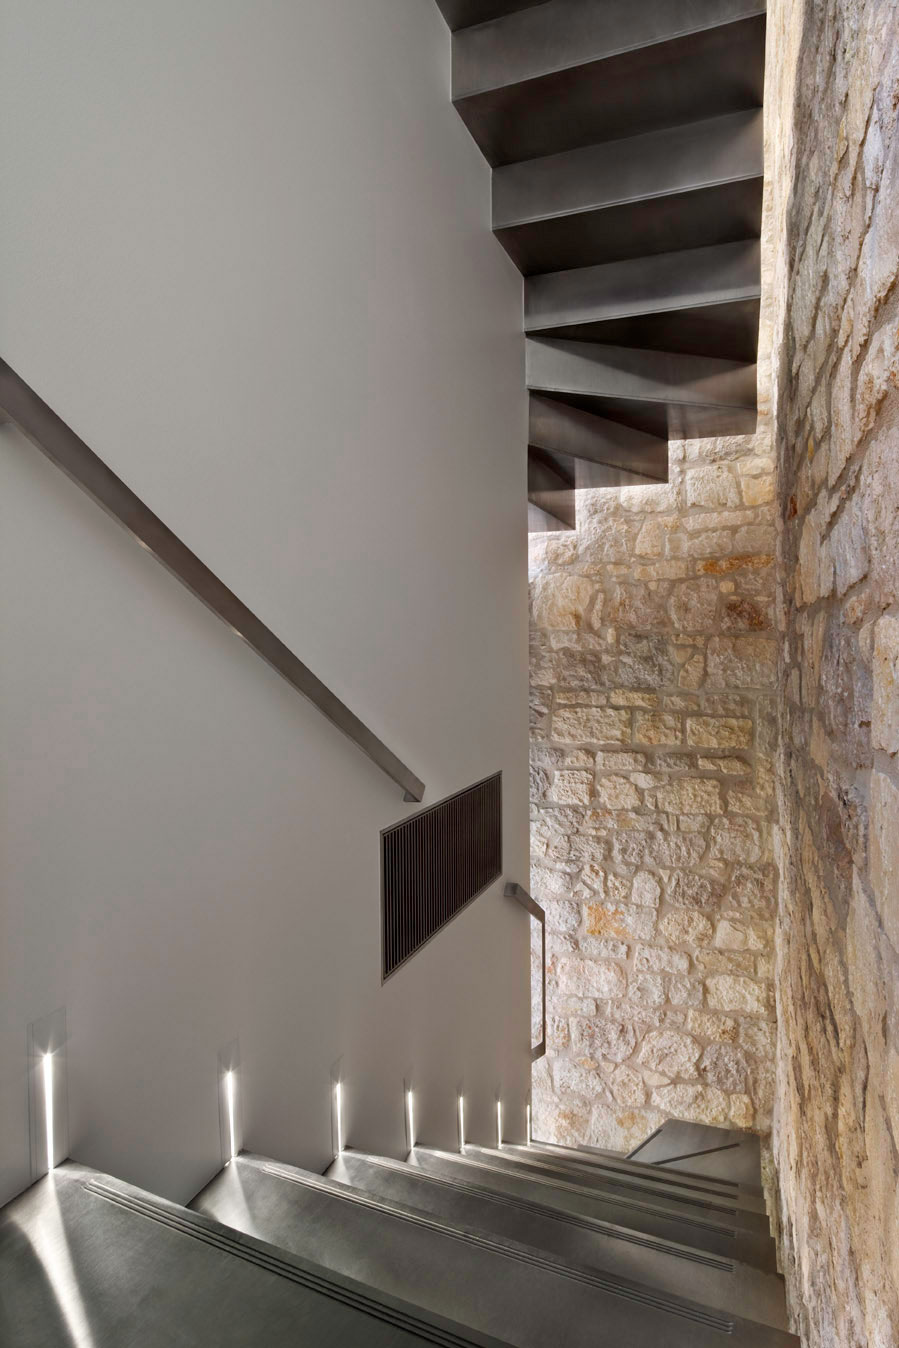 Staircase Lighting, Renovation of an 18th Century Building in Rovinj, Croatia